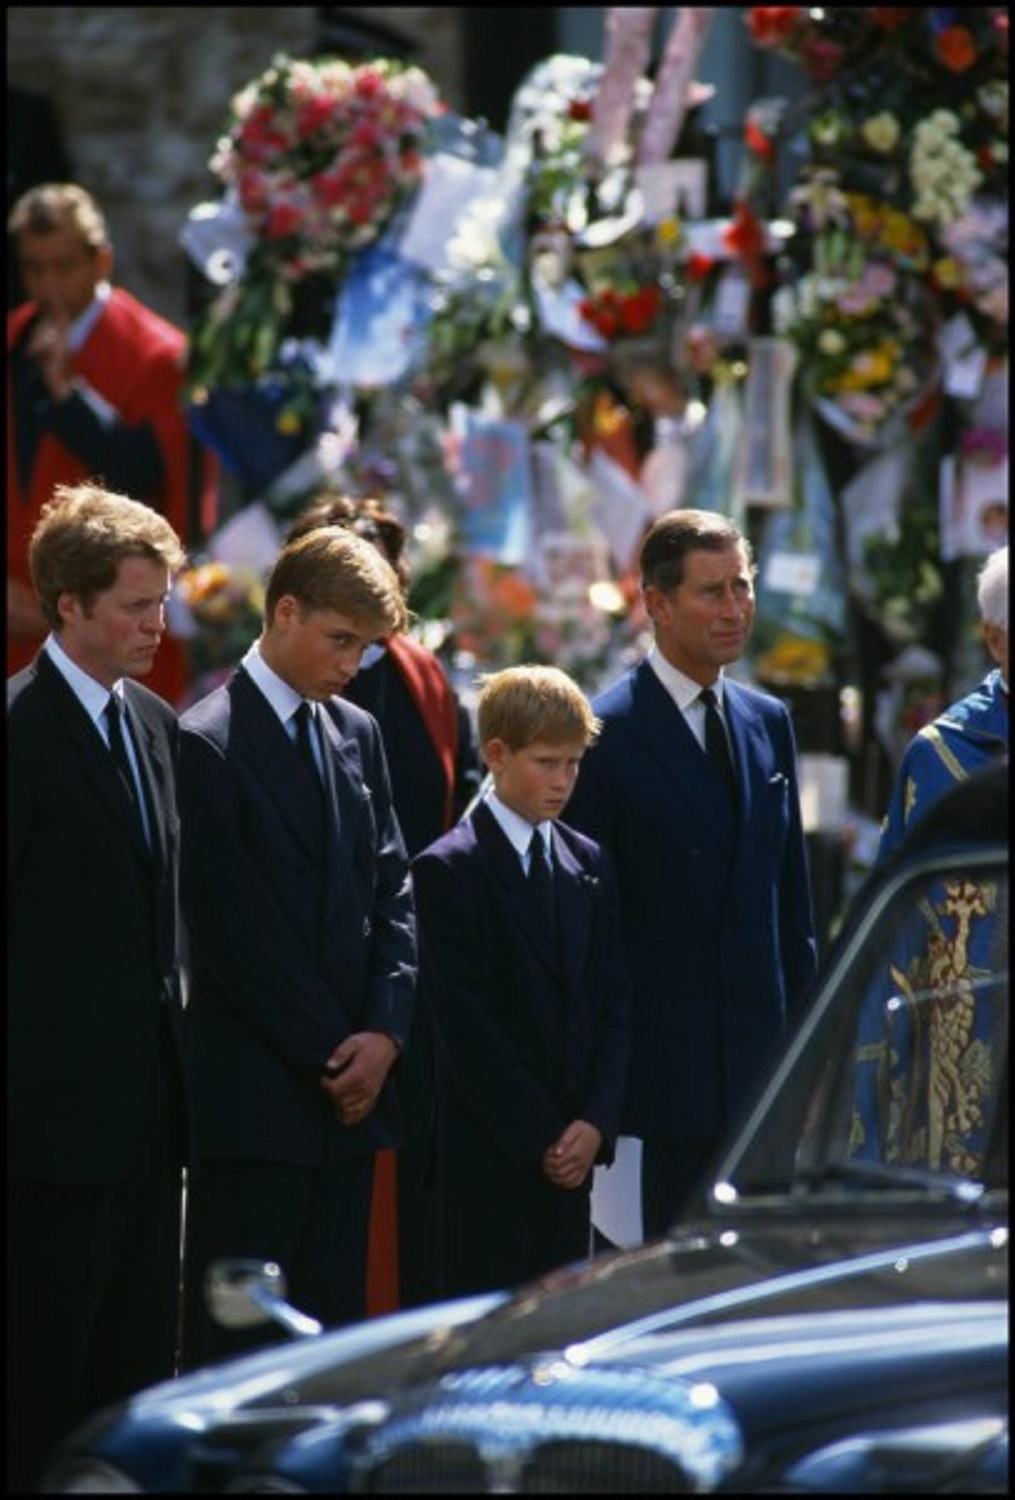 Funeral of Princess Diana, London, 1997, by Peter Turnley